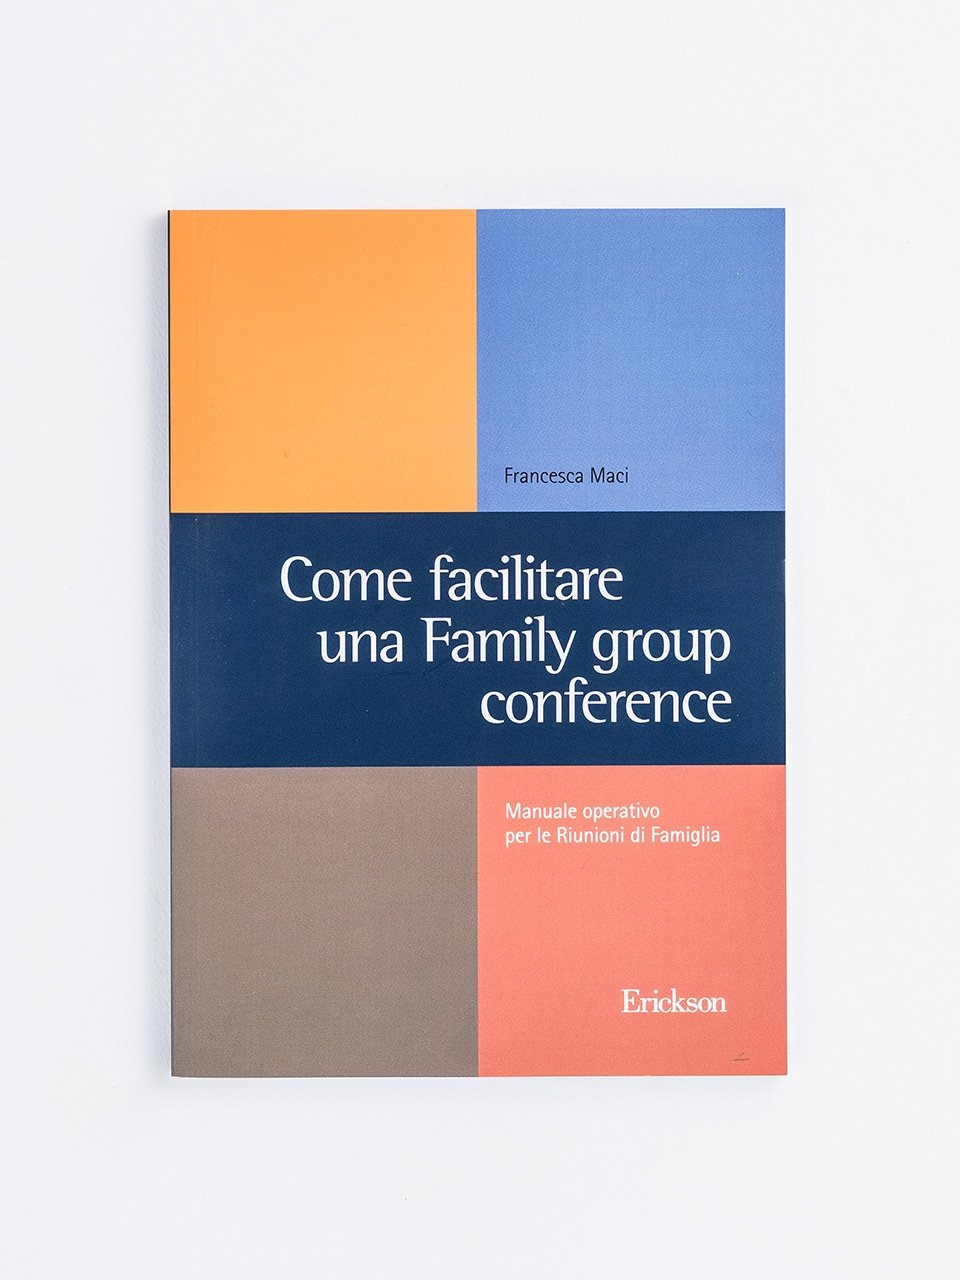 Come facilitare una Family group conference - Lessico e ortografia - Volume 1 - Libri - App e software - Erickson